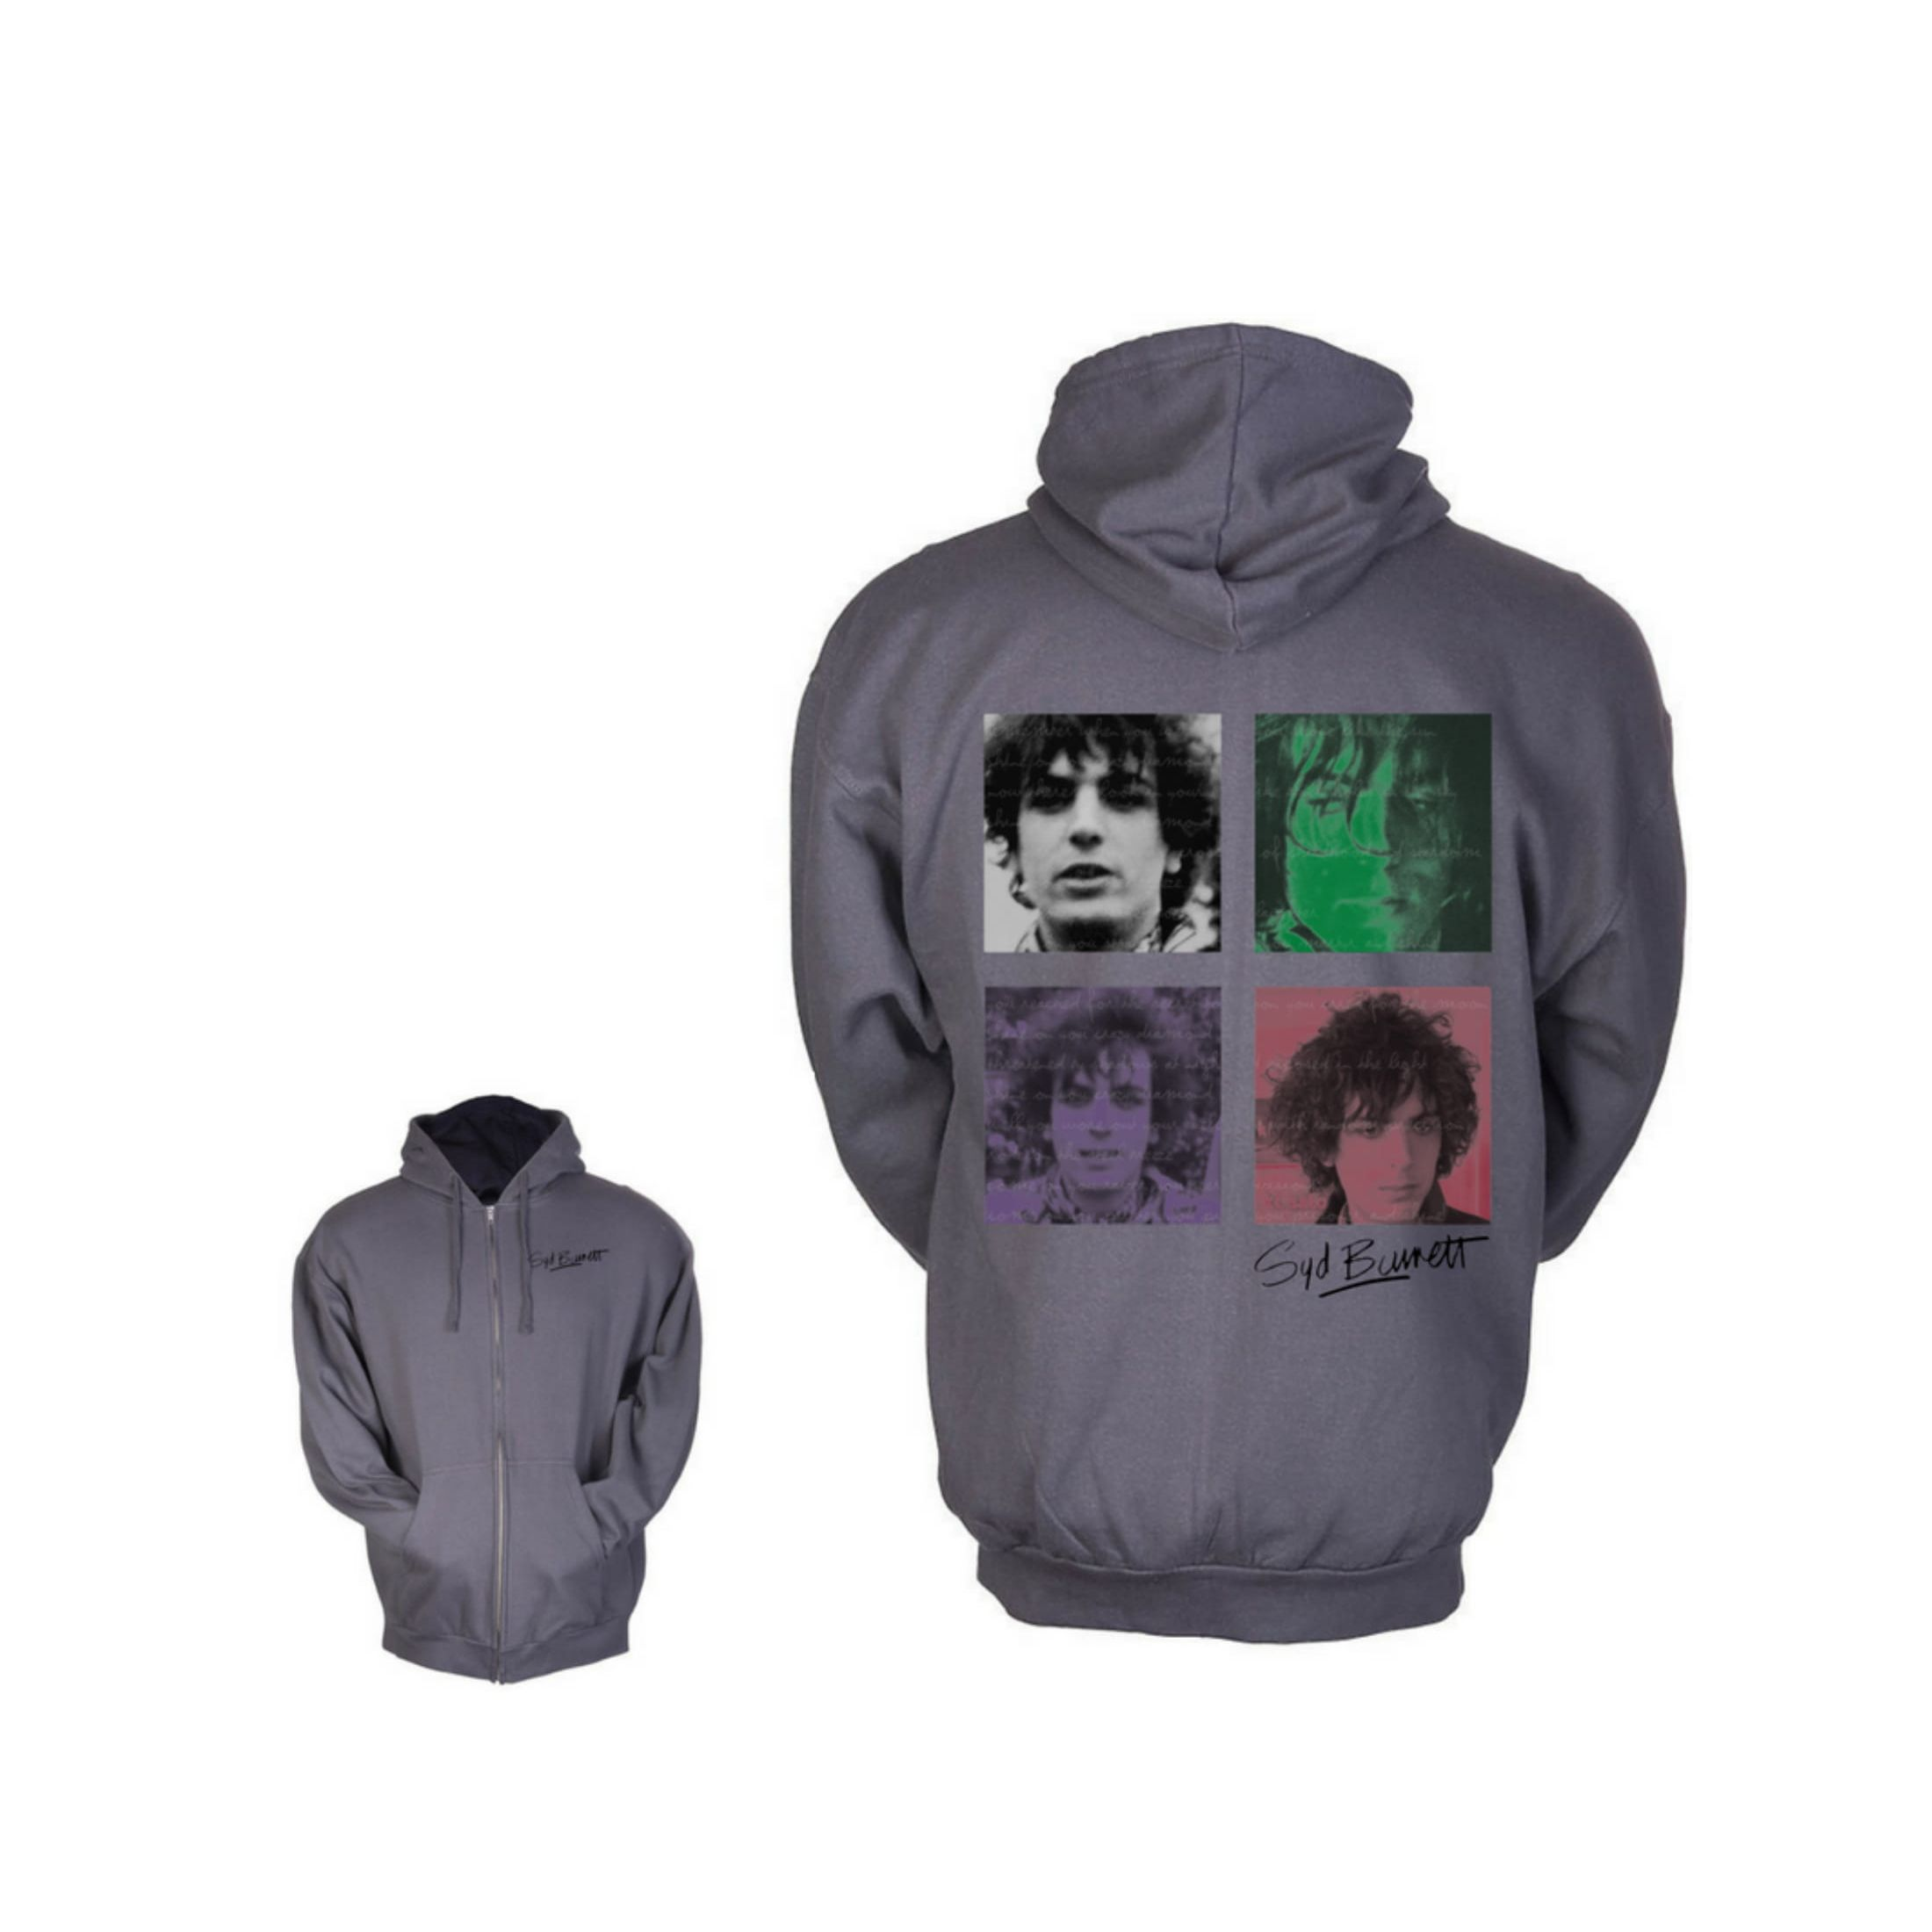 Four Shades Charcoal Hoodie